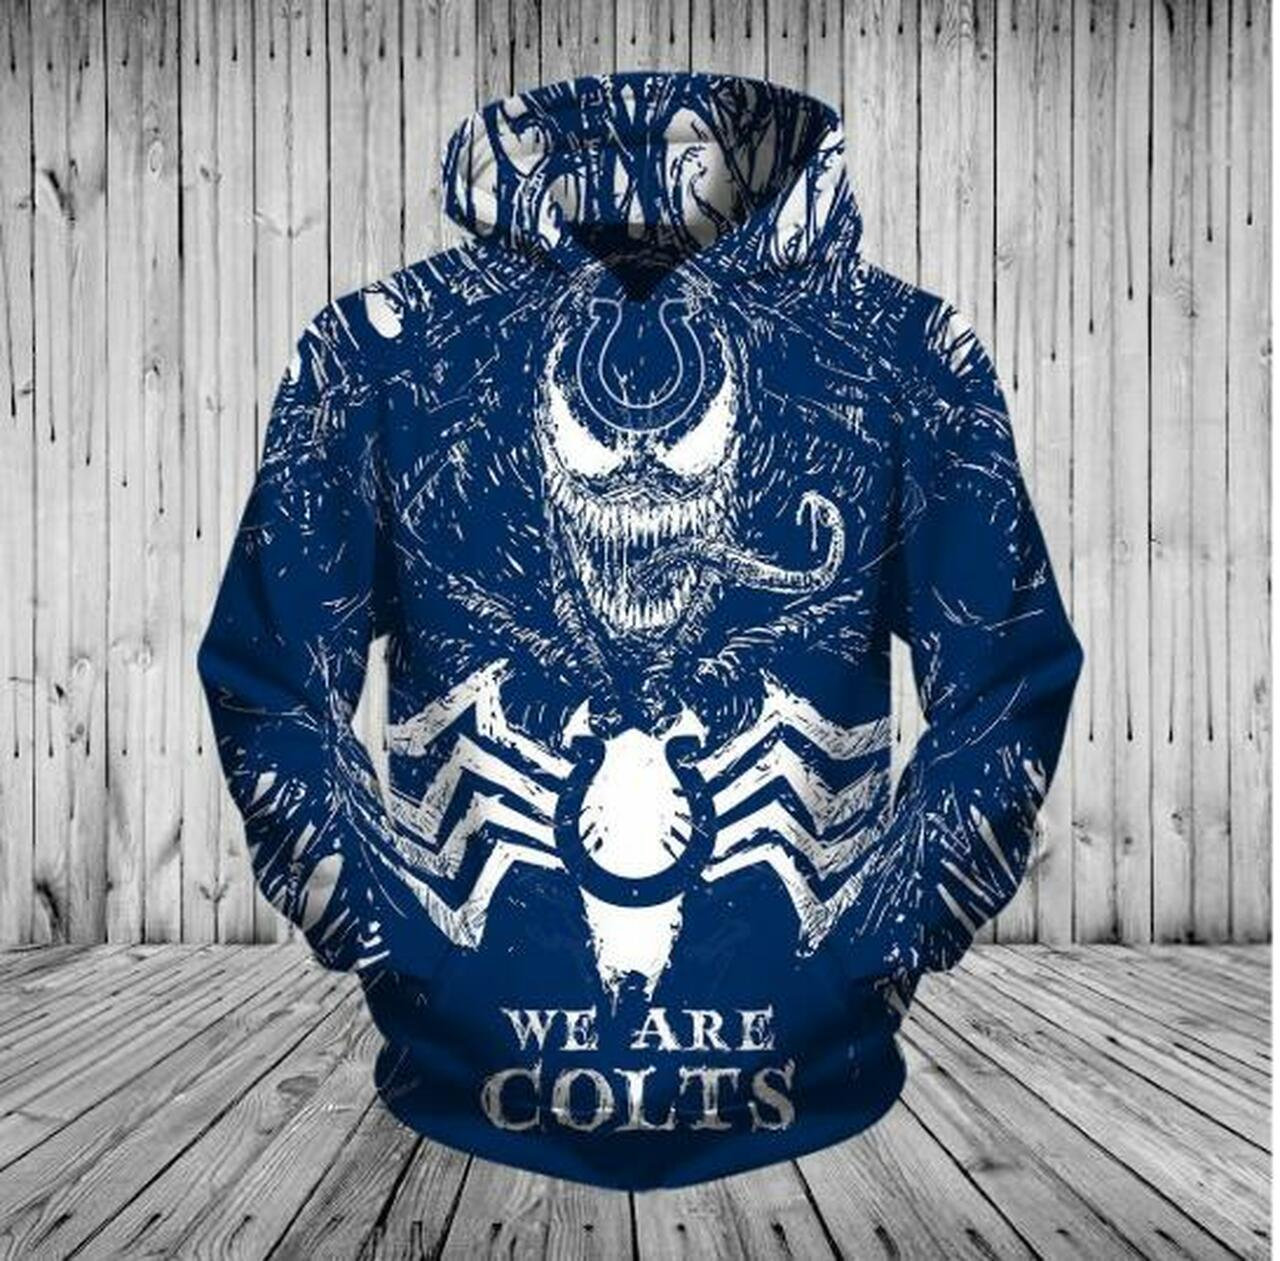 **(OFFICIALLY-LICENSED-N.F.L.INDIANAPOLIS-COLTS,CLASSIC-VENOM-HORROR-MOVIE-CHARACTER & WE-ARE-COLTS/NICE-DETAILED-PREMIUM-CUSTOM-3D-GRAPHIC-PRINTED/ALL-OVER-PRINTED-DESIGN,PREMIUM-WARM-N.F.L.INDIANAPOLIS-COLTS-LOGO & TEAM-COLOR-PULLOVER-HOODIES)**